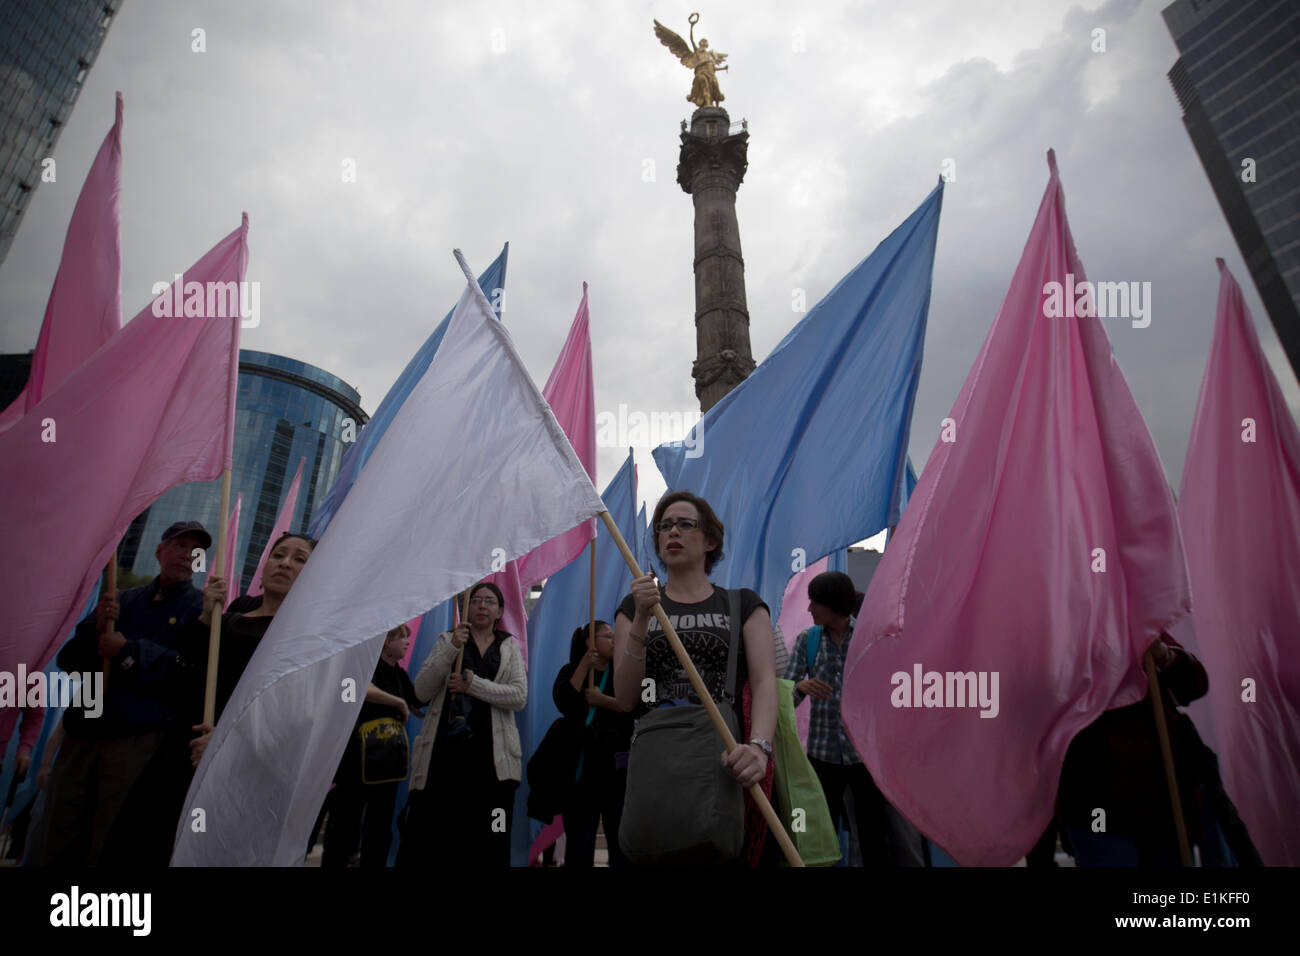 Mexico City, Mexico. 5th June, 2014. People hold flags during a rally in Mexico City, capital of Mexico, June 5, Stock Photo